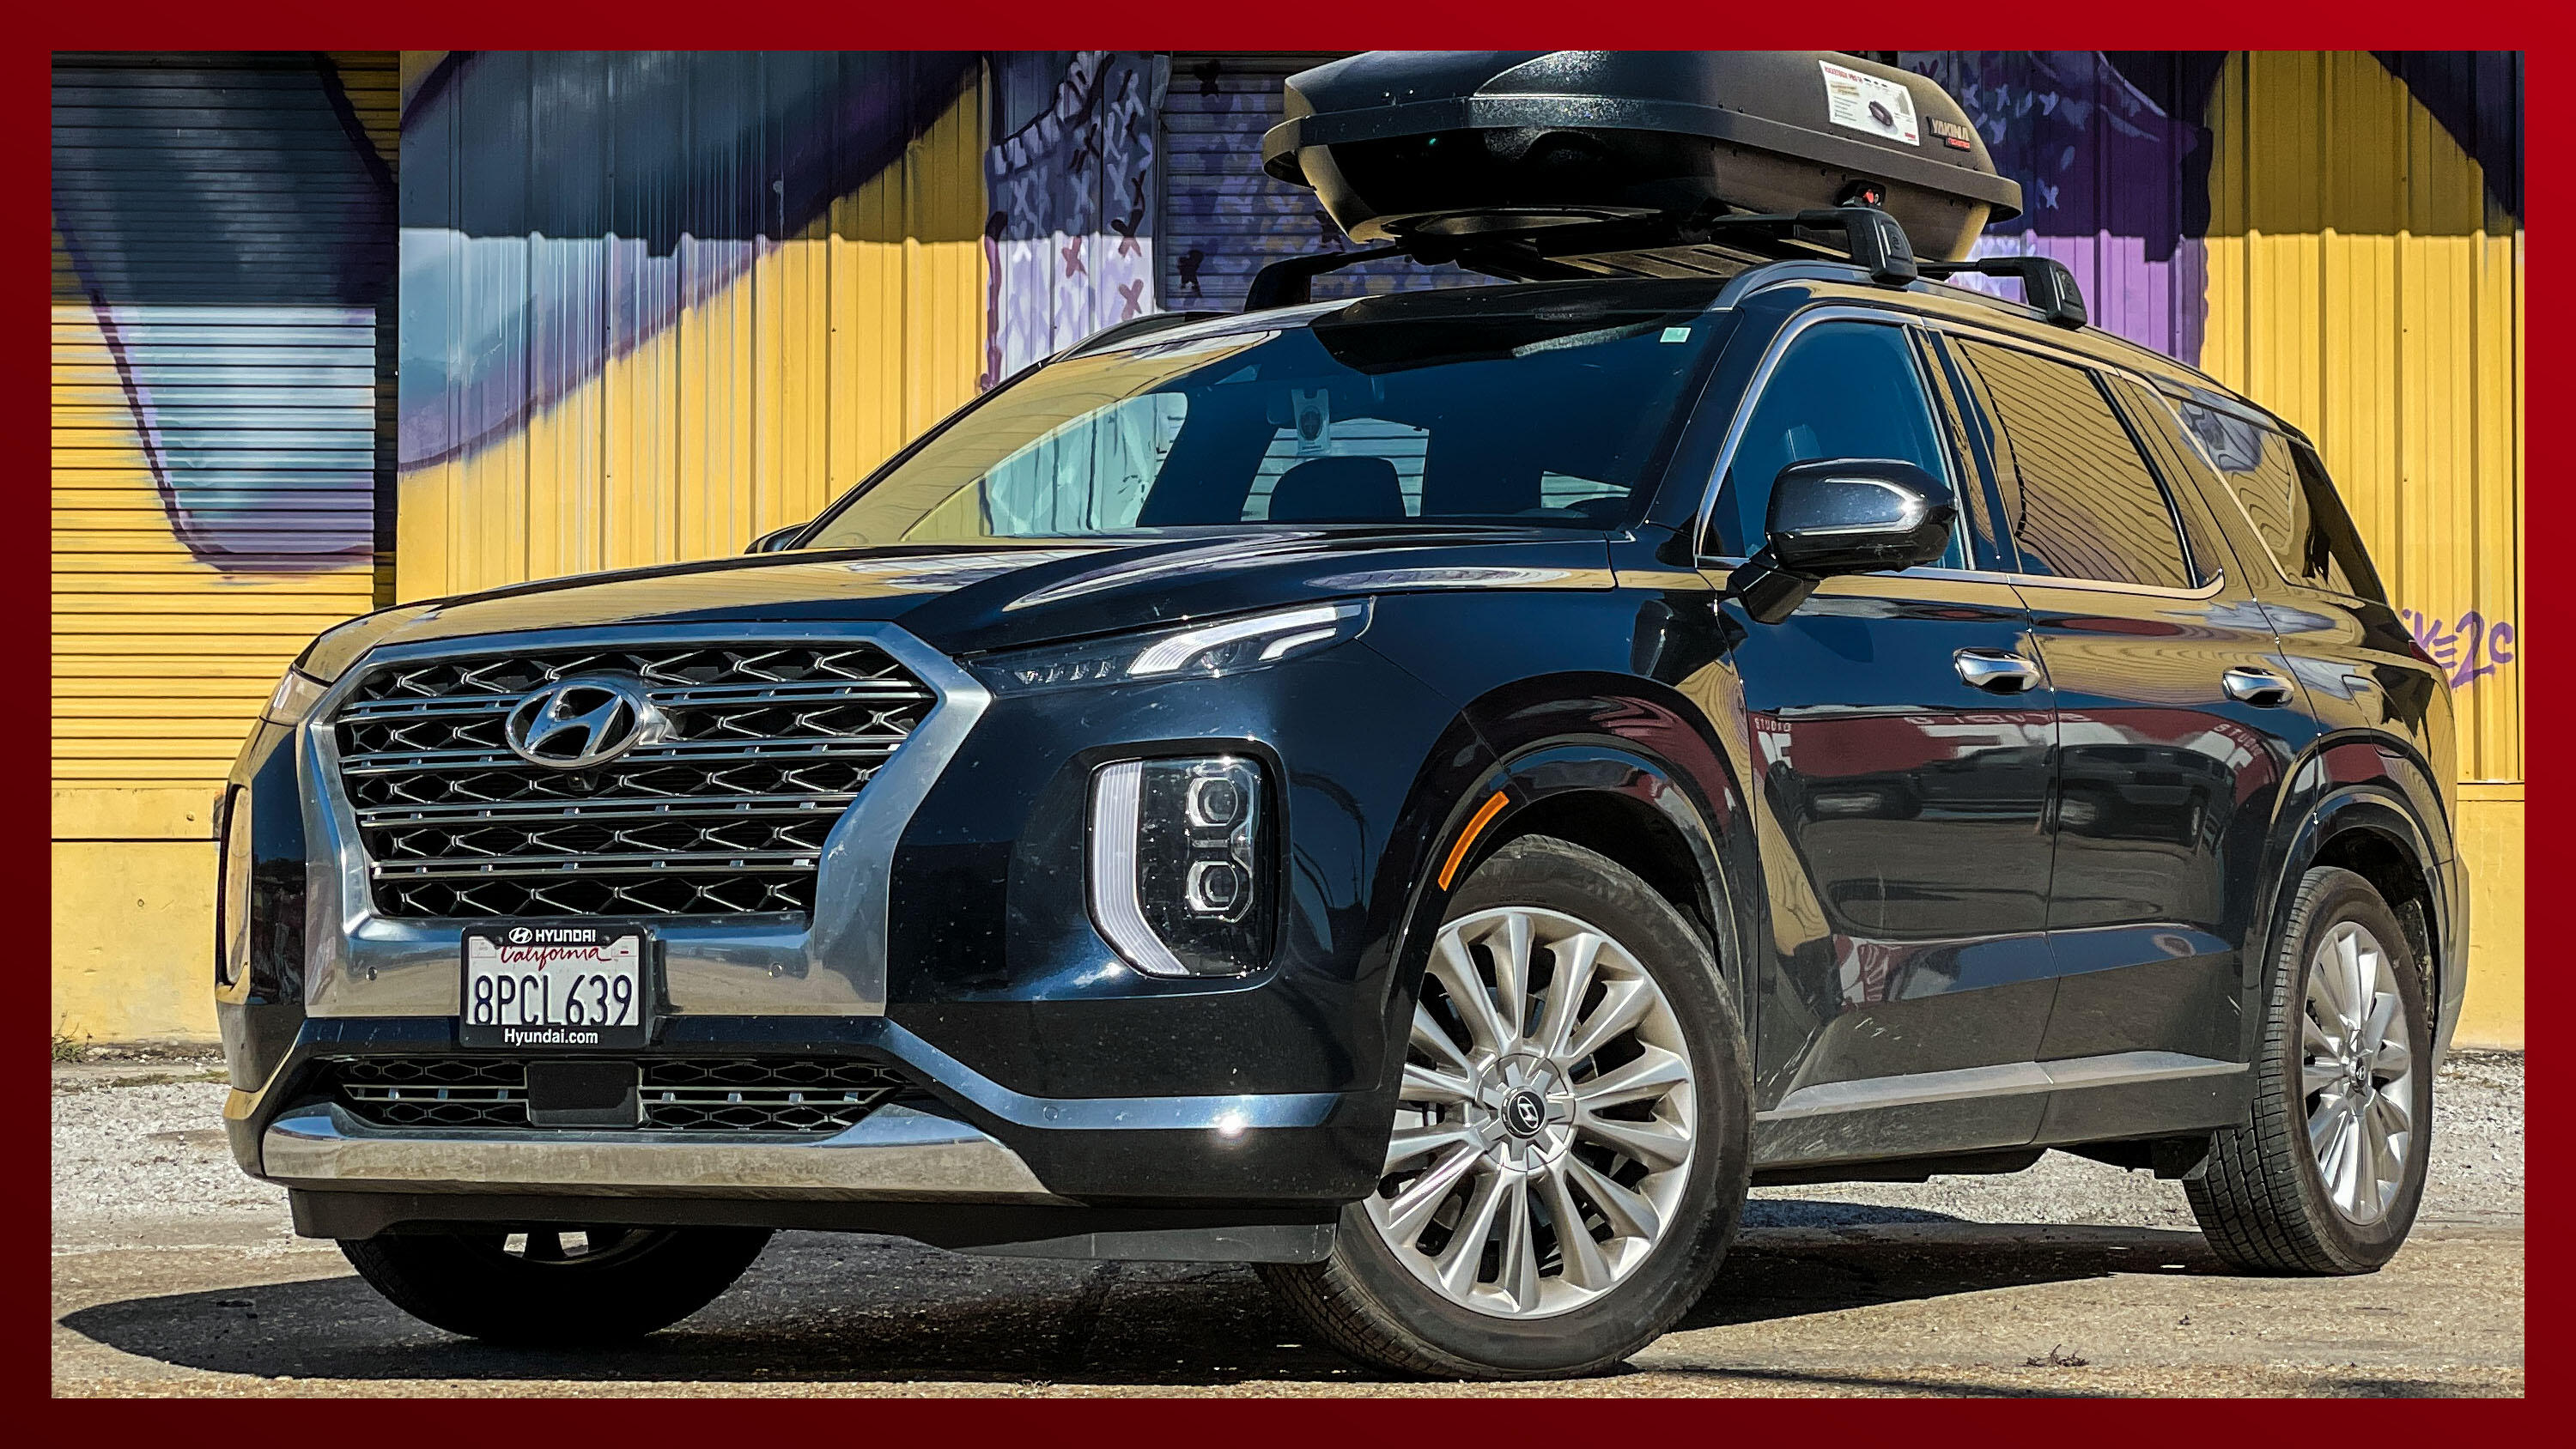 Video: Hyundai Palisade: Long-term impressions after a year and 13,500 miles